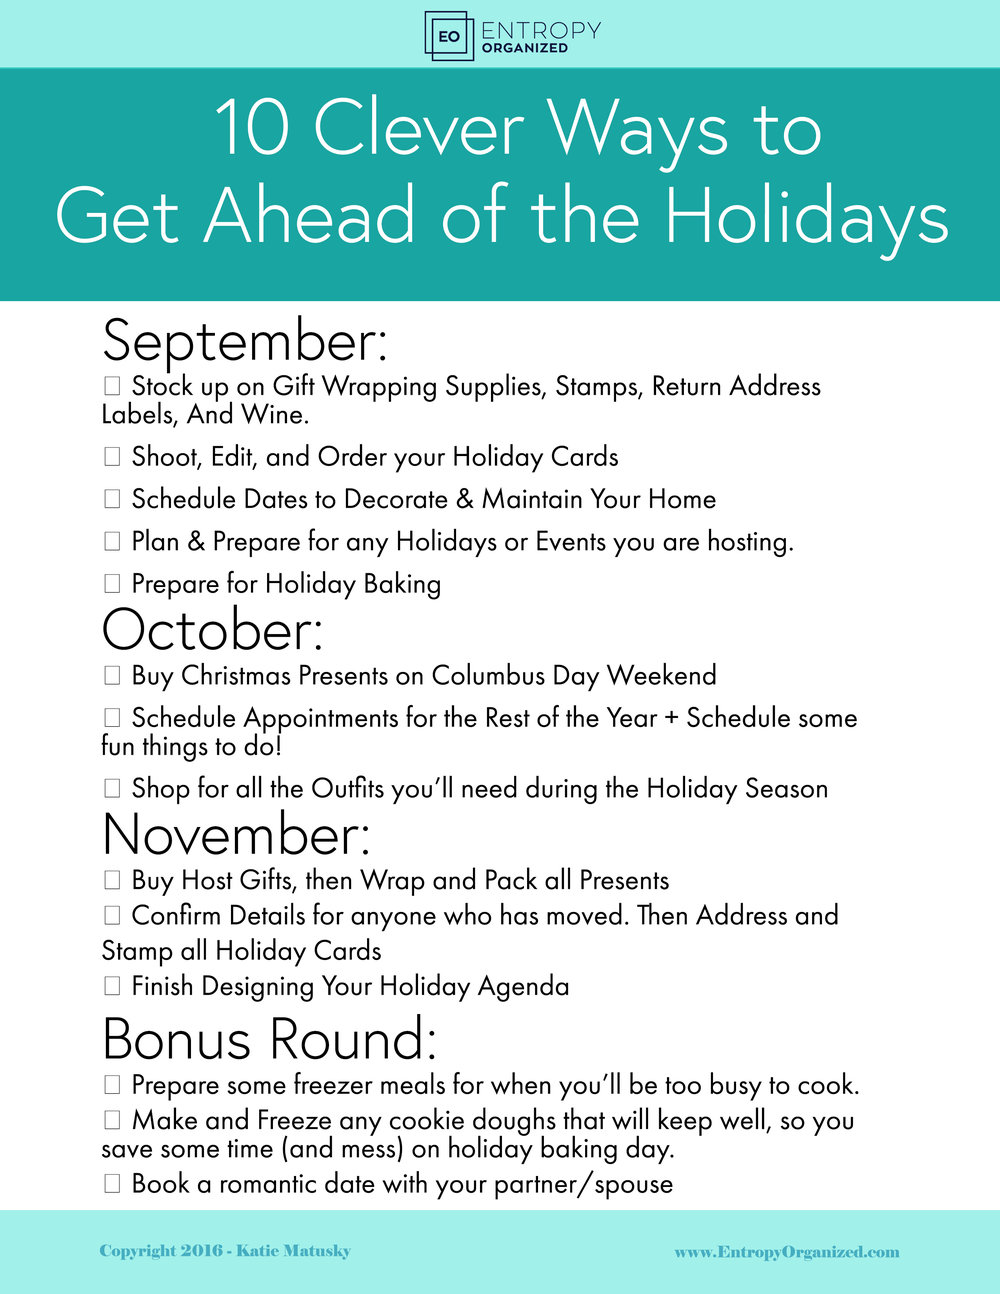 10 Clever Ways to Get Ahead of the Holidays.jpg